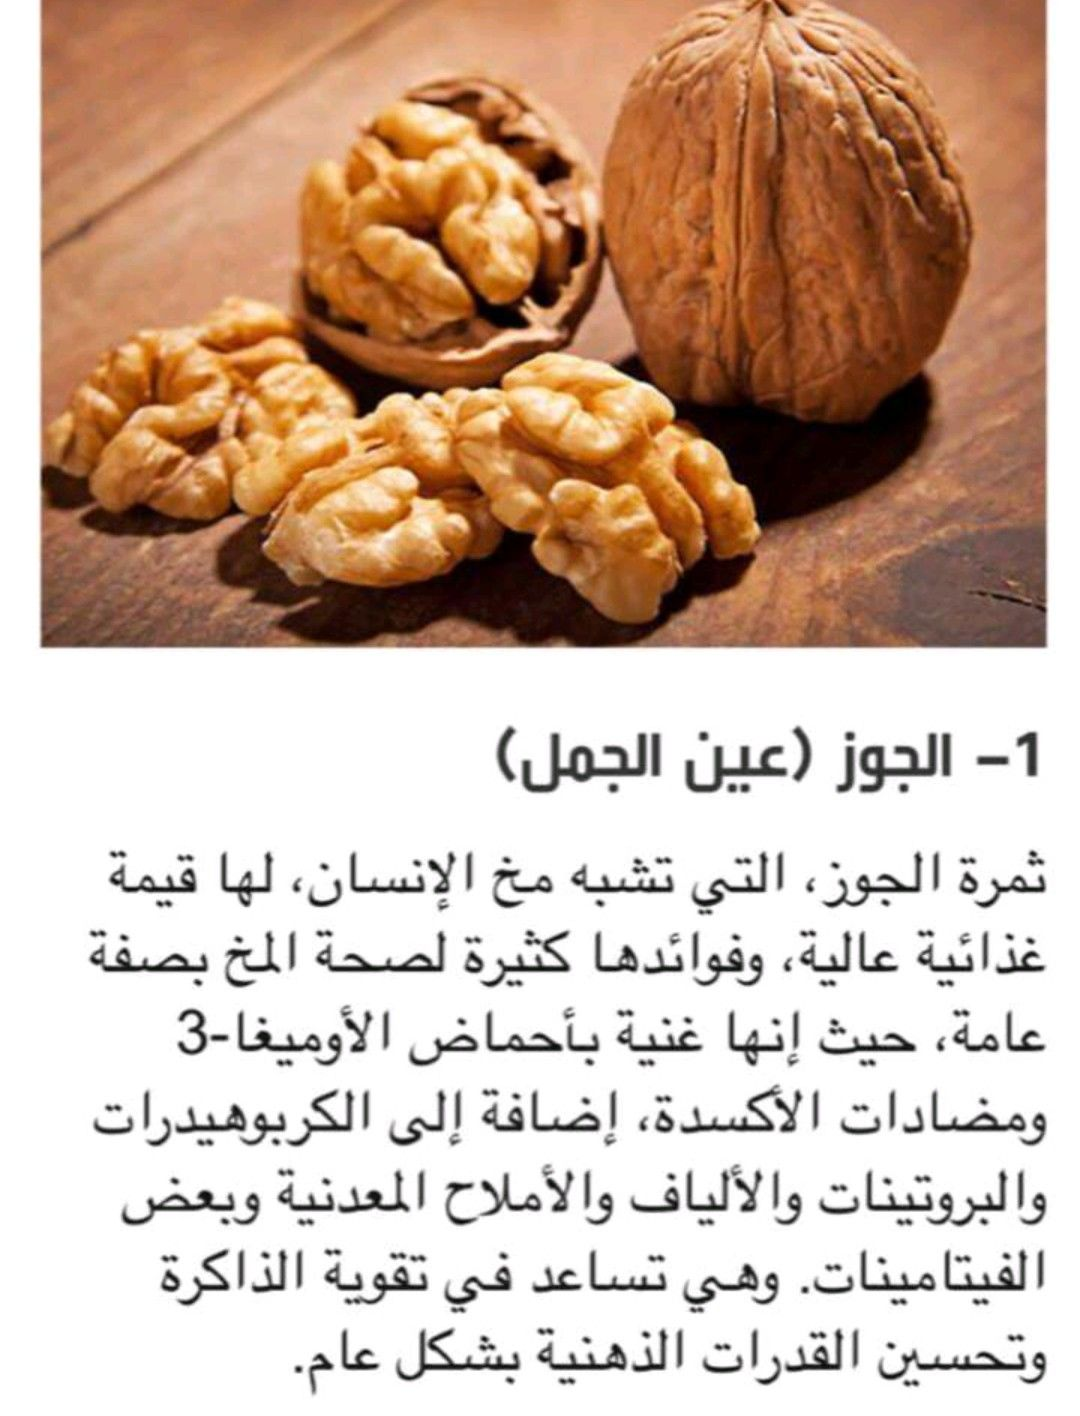 Pin By صقر السماء On هل تعلم Health Facts Food Health Fitness Nutrition Health Facts Fitness